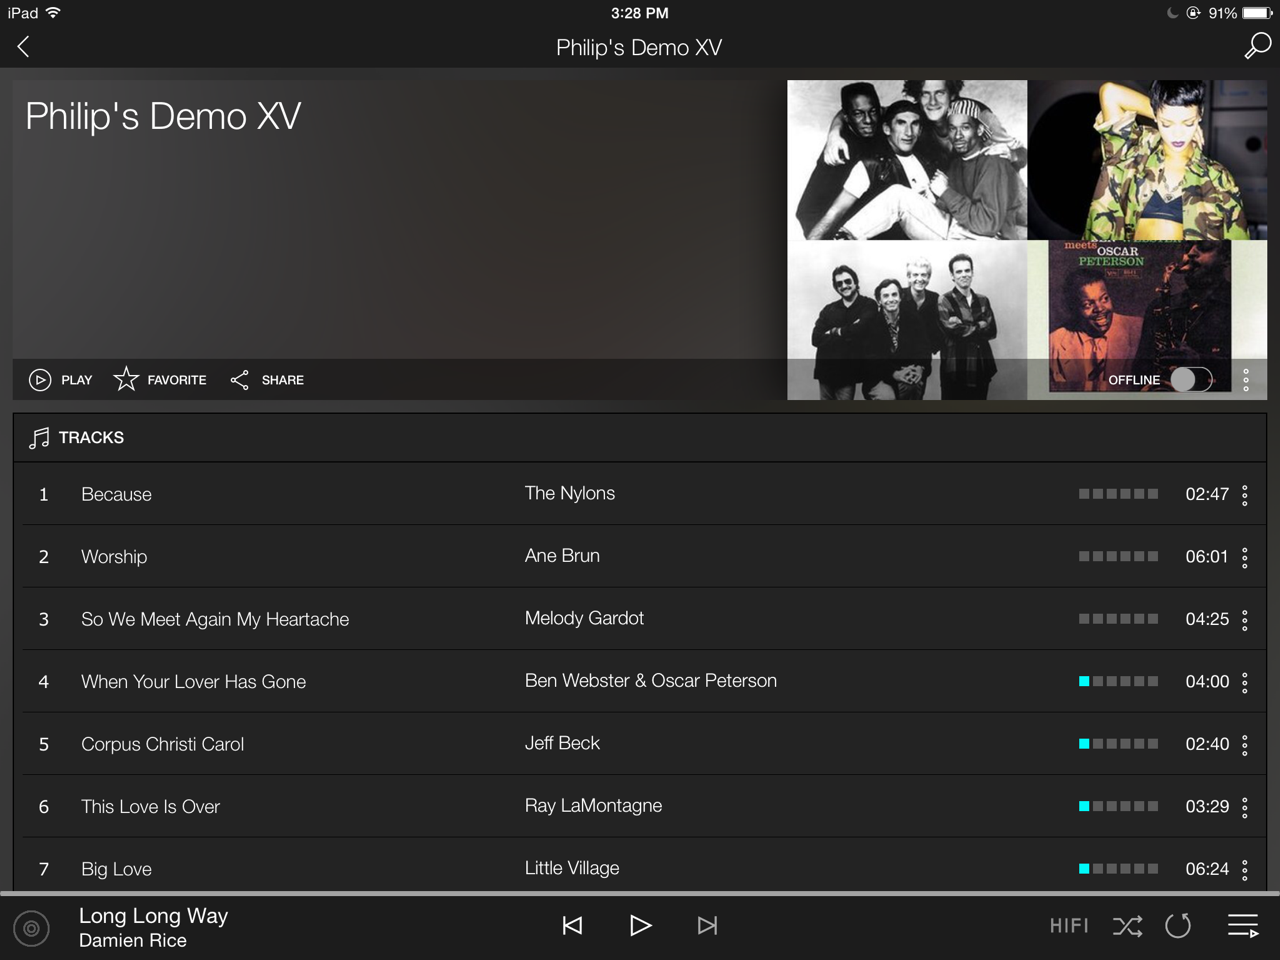 Philip's Demo 15 playlist